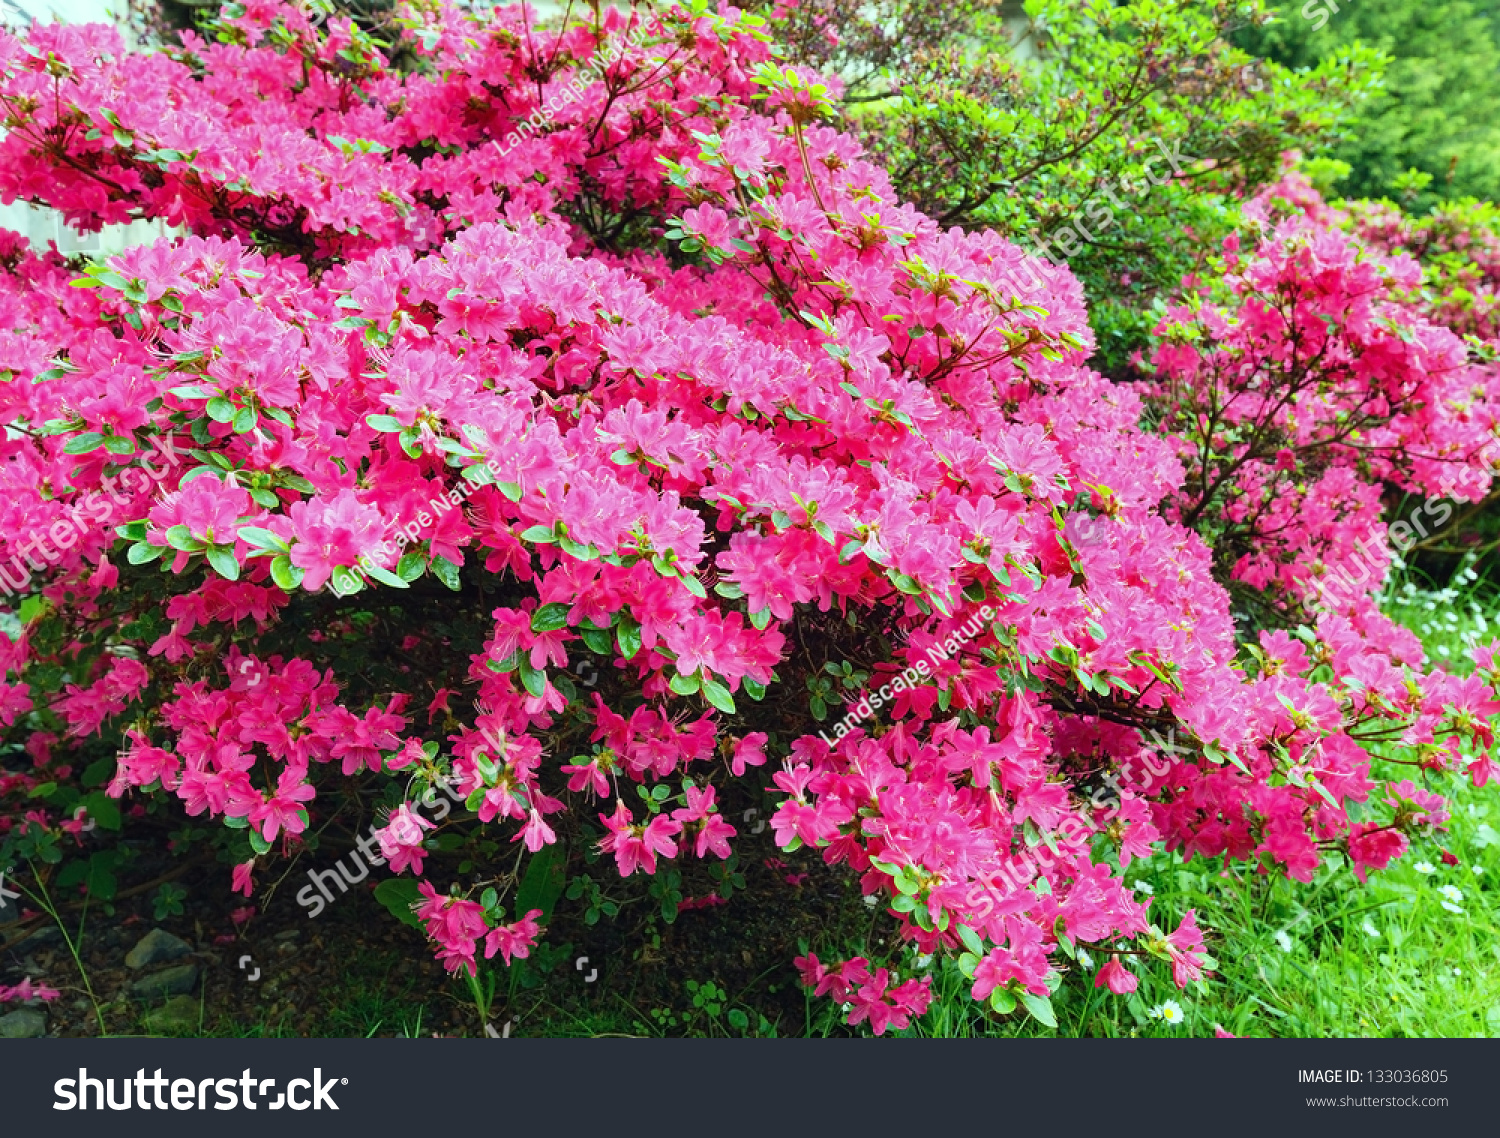 Blossoming Rhododendron Bush Pink Flowers Closeup Stock Photo